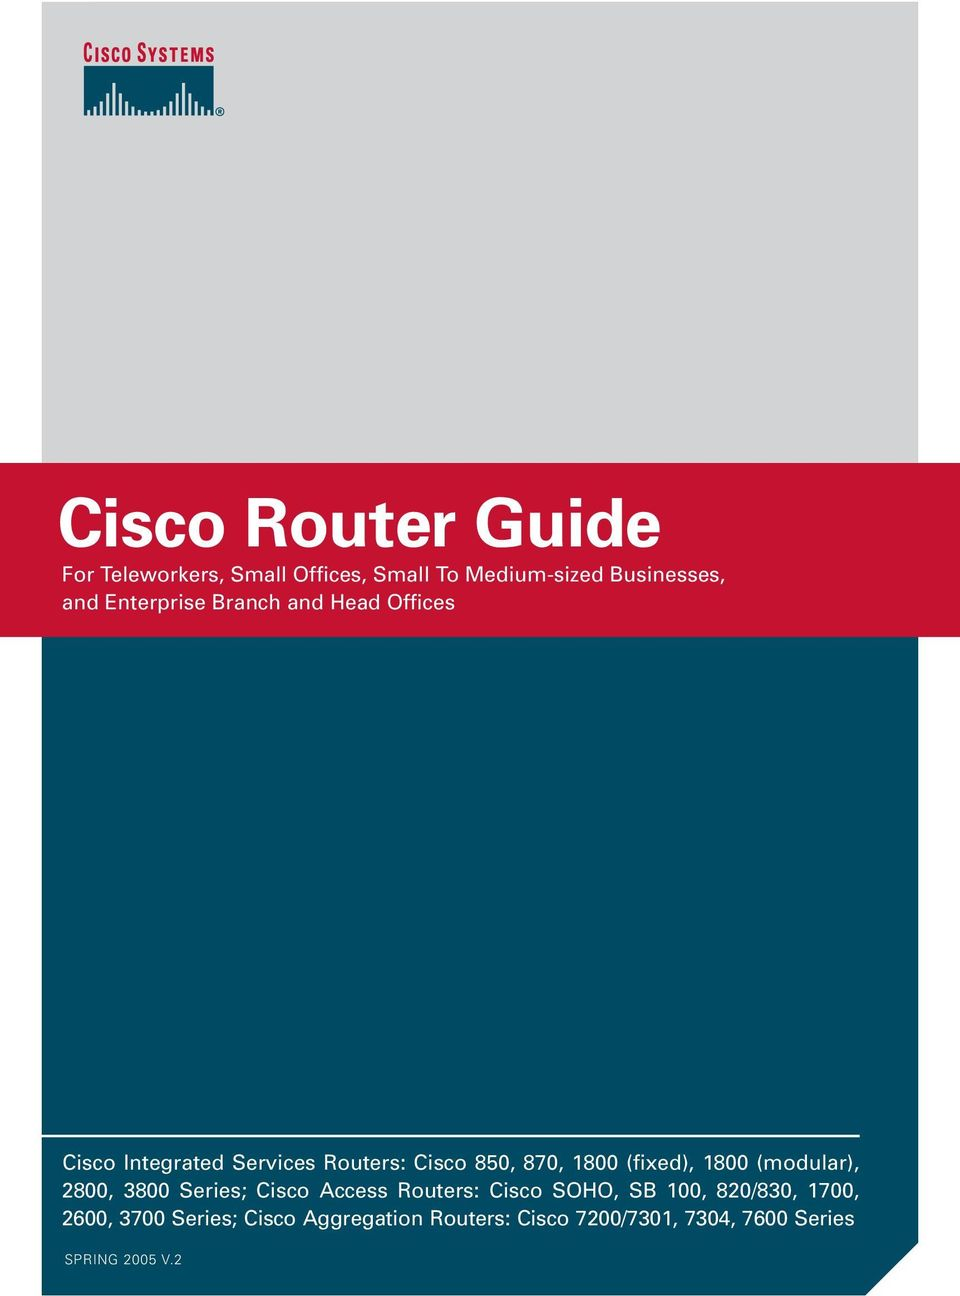 (fixed), 1800 (modular), 2800, 3800 Series; Cisco Access Routers: Cisco SOHO, SB 100, 820/830,